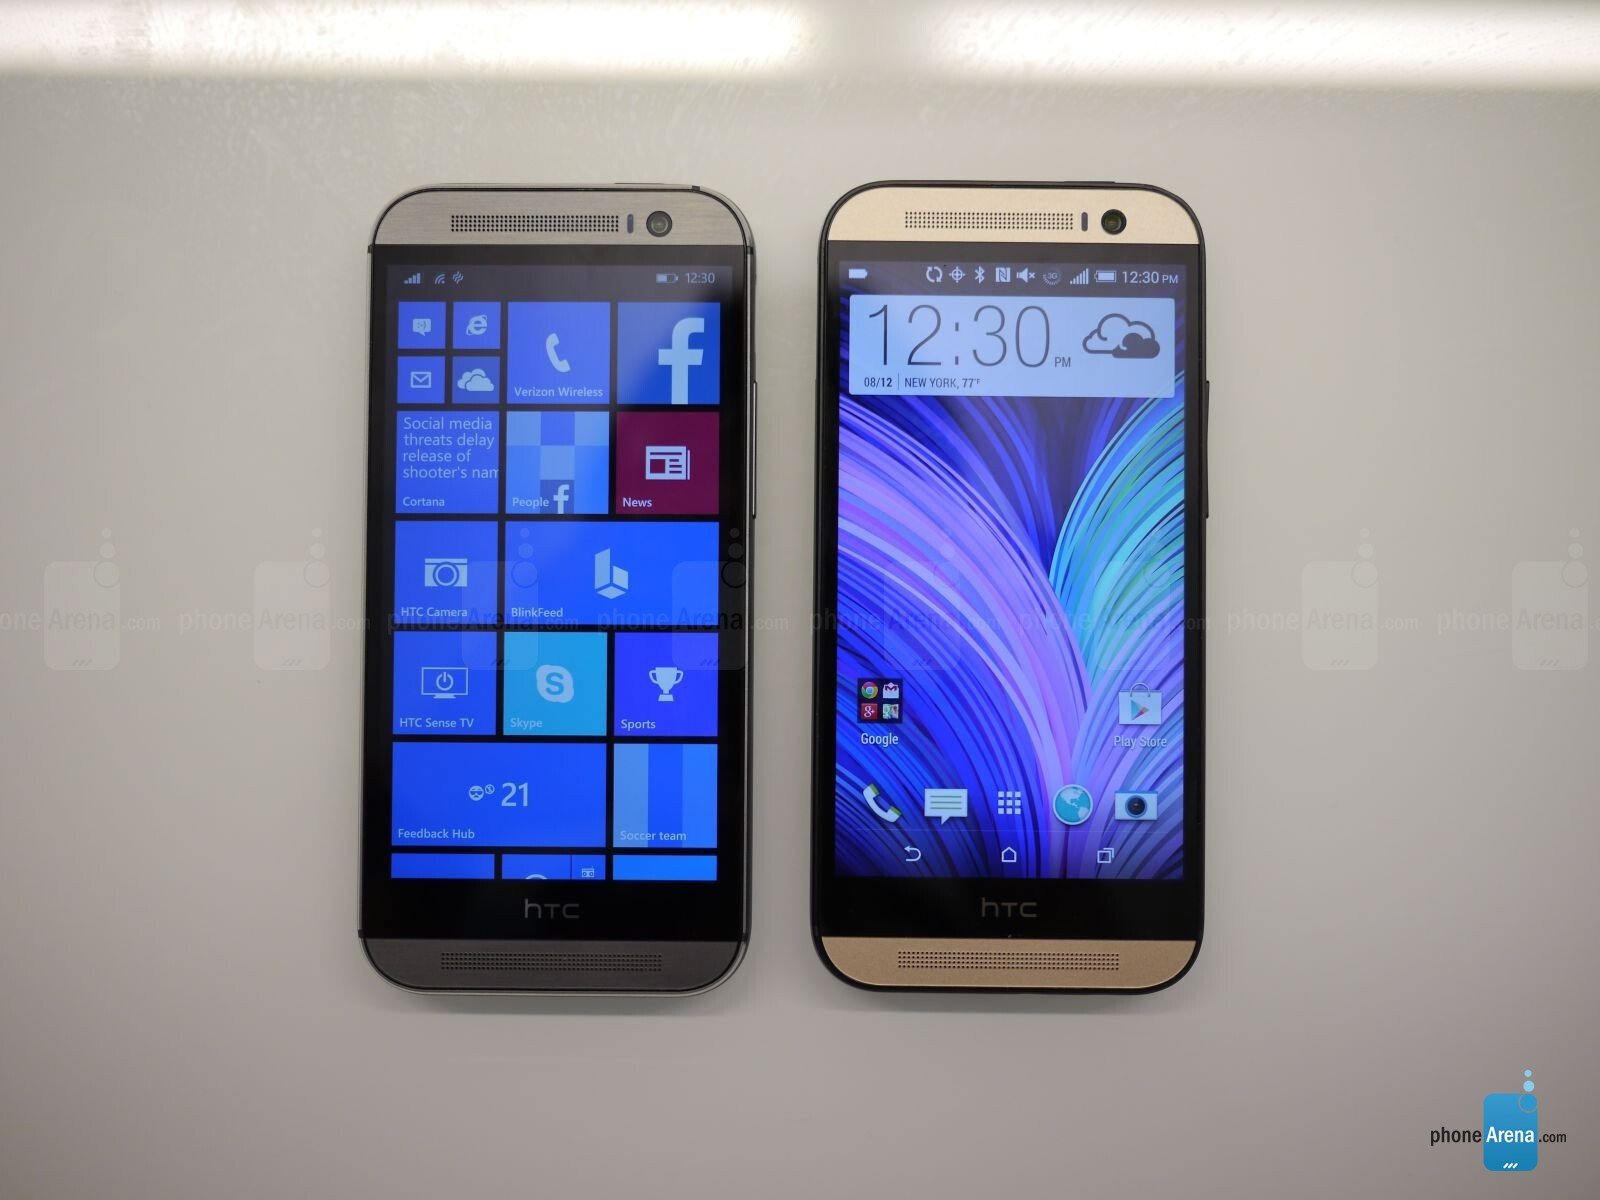 htc one m8 for windows vs htc one m8 for android  first